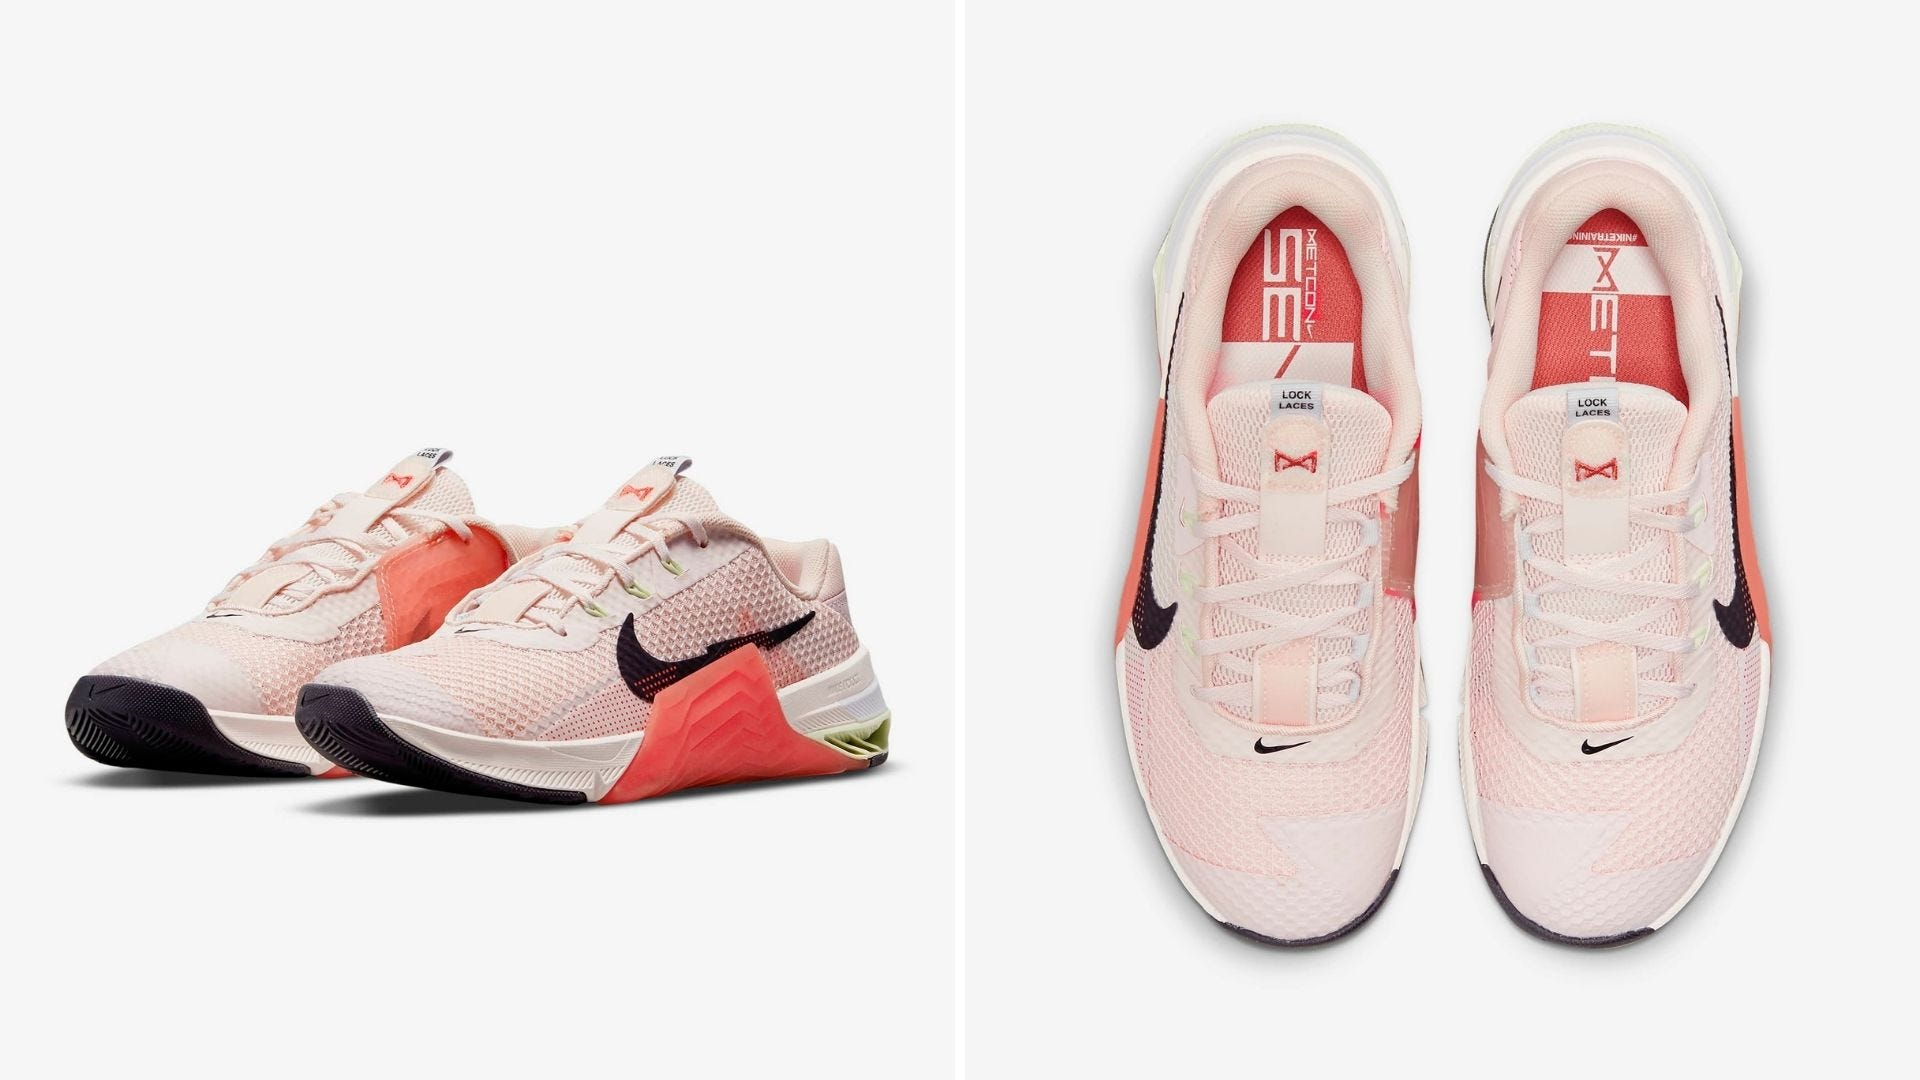 A pair of pink athletic shoes